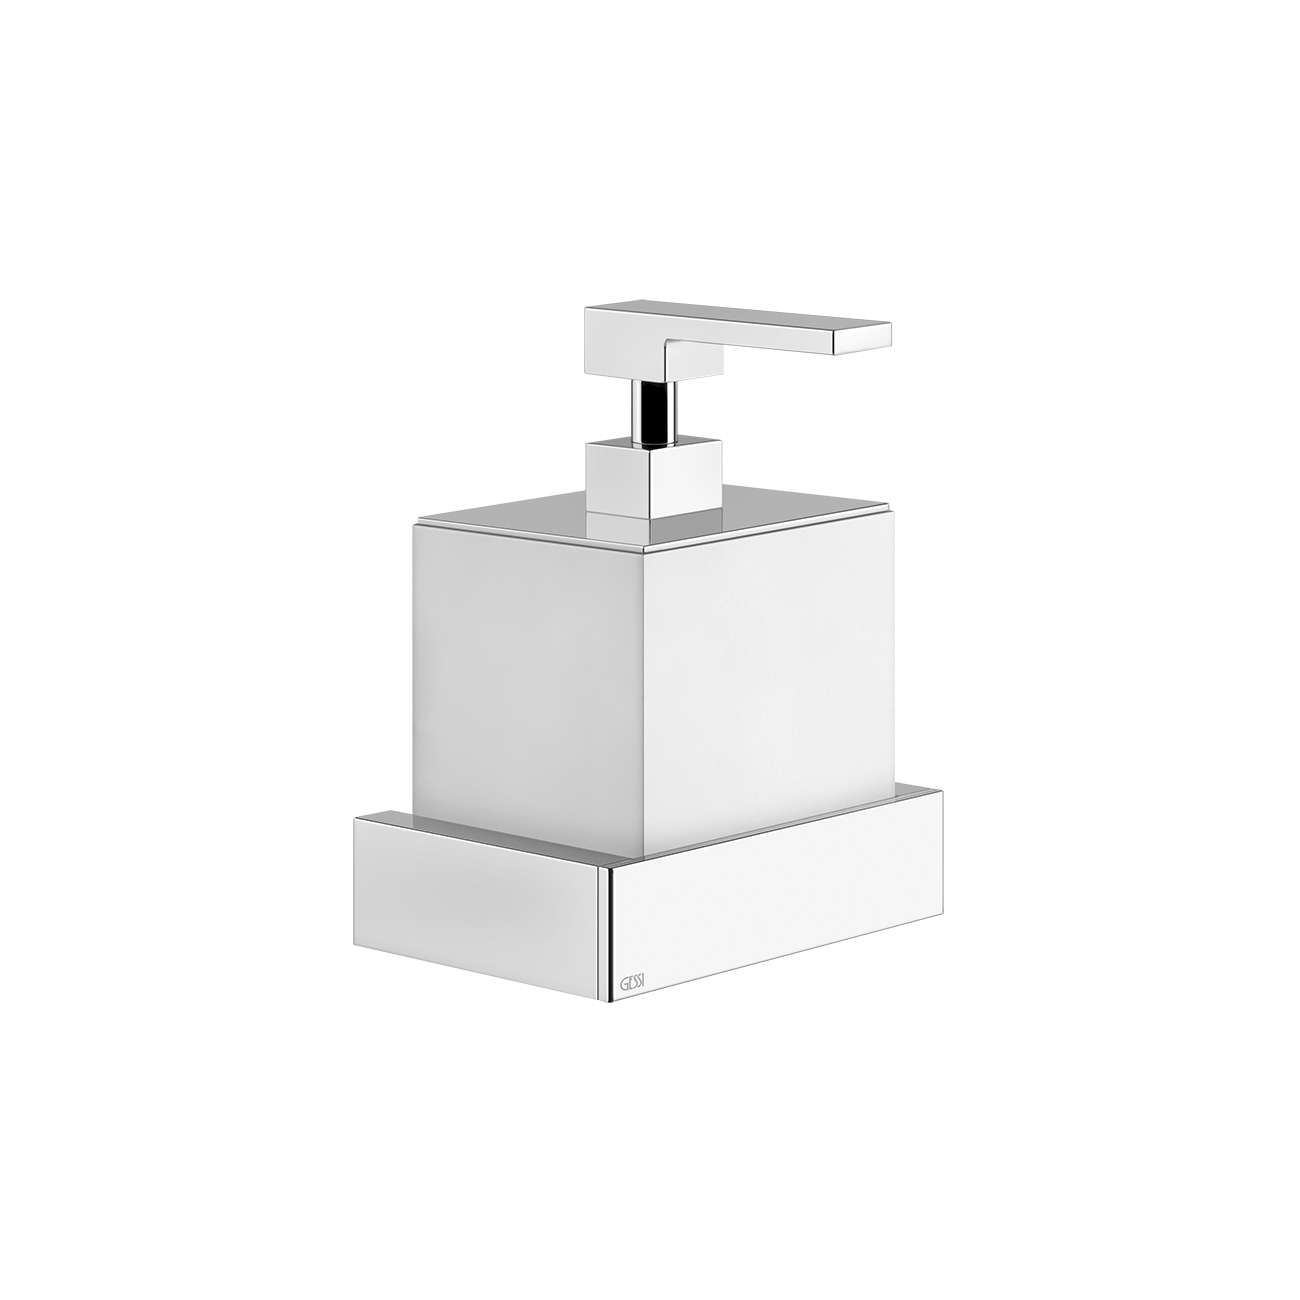 Gessi Rettangolo Wall Mounted Soap, Soap Dispenser For Bathroom Wall Mounted